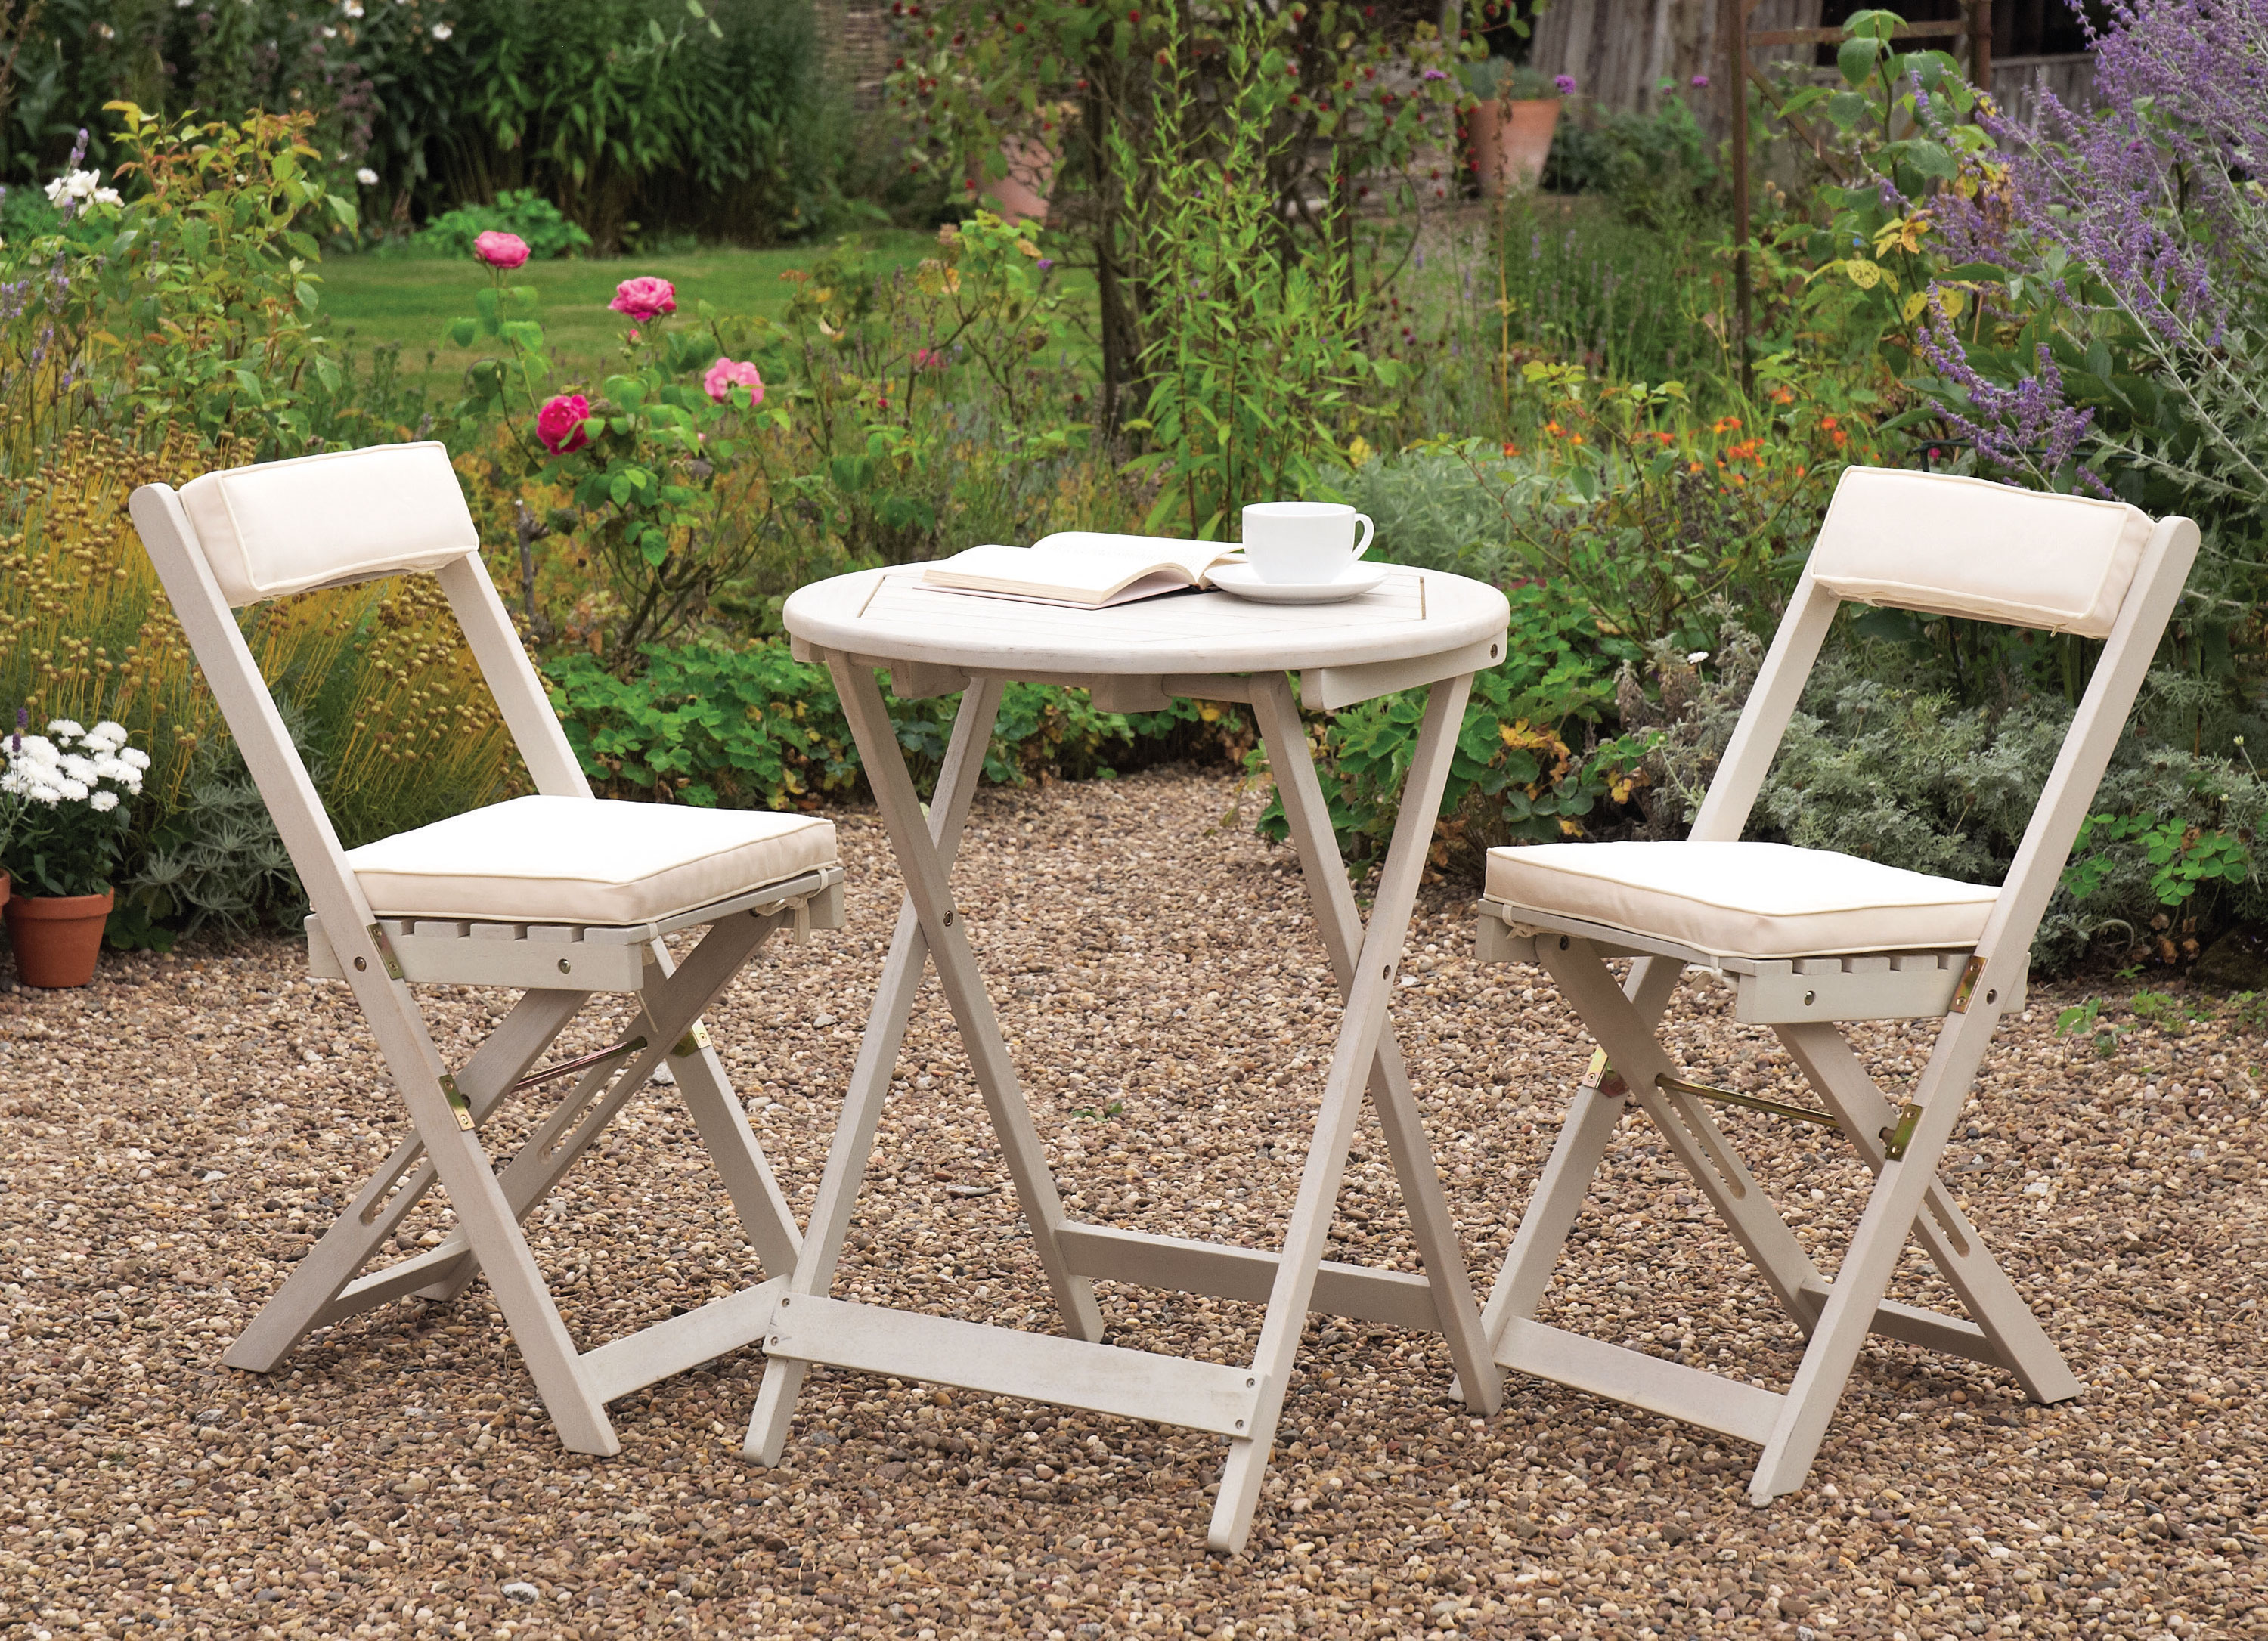 Buy cheap Hardwood patio set pare Sheds & Garden Furniture prices fo